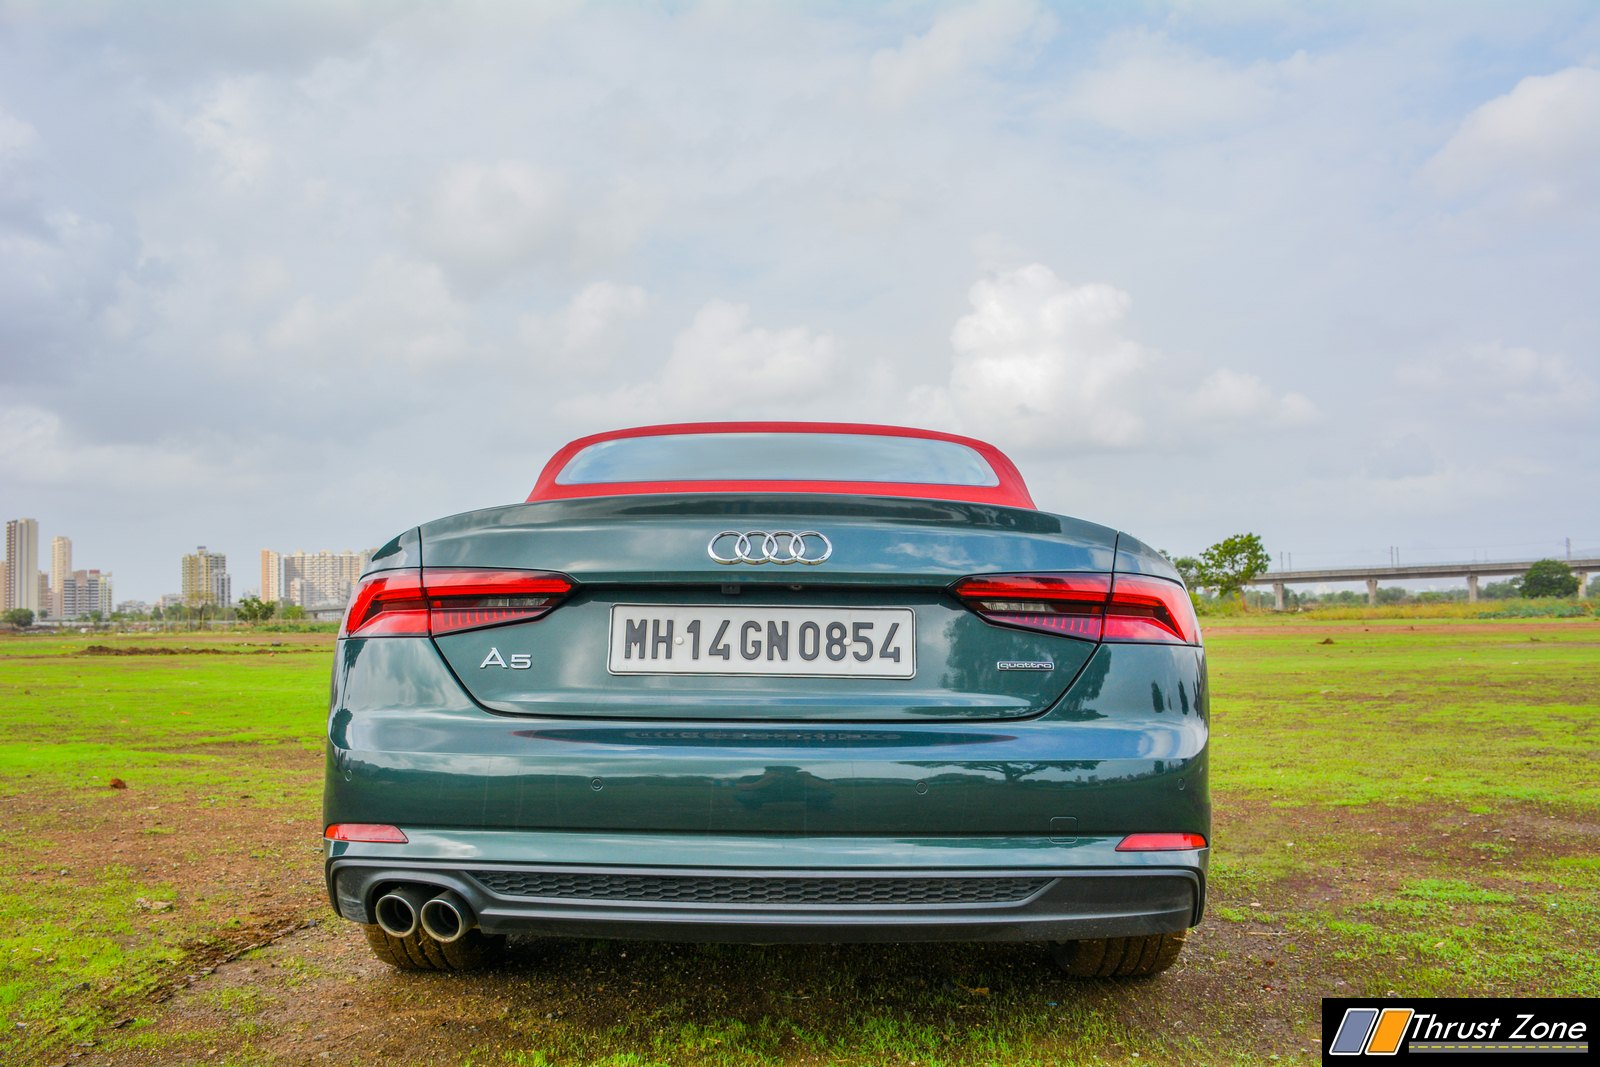 https://www.thrustzone.com/wp-content/uploads/2019/06/2019-Audi-A5-Cabriolet-Convertible-India-Diesel-Review-12.jpg